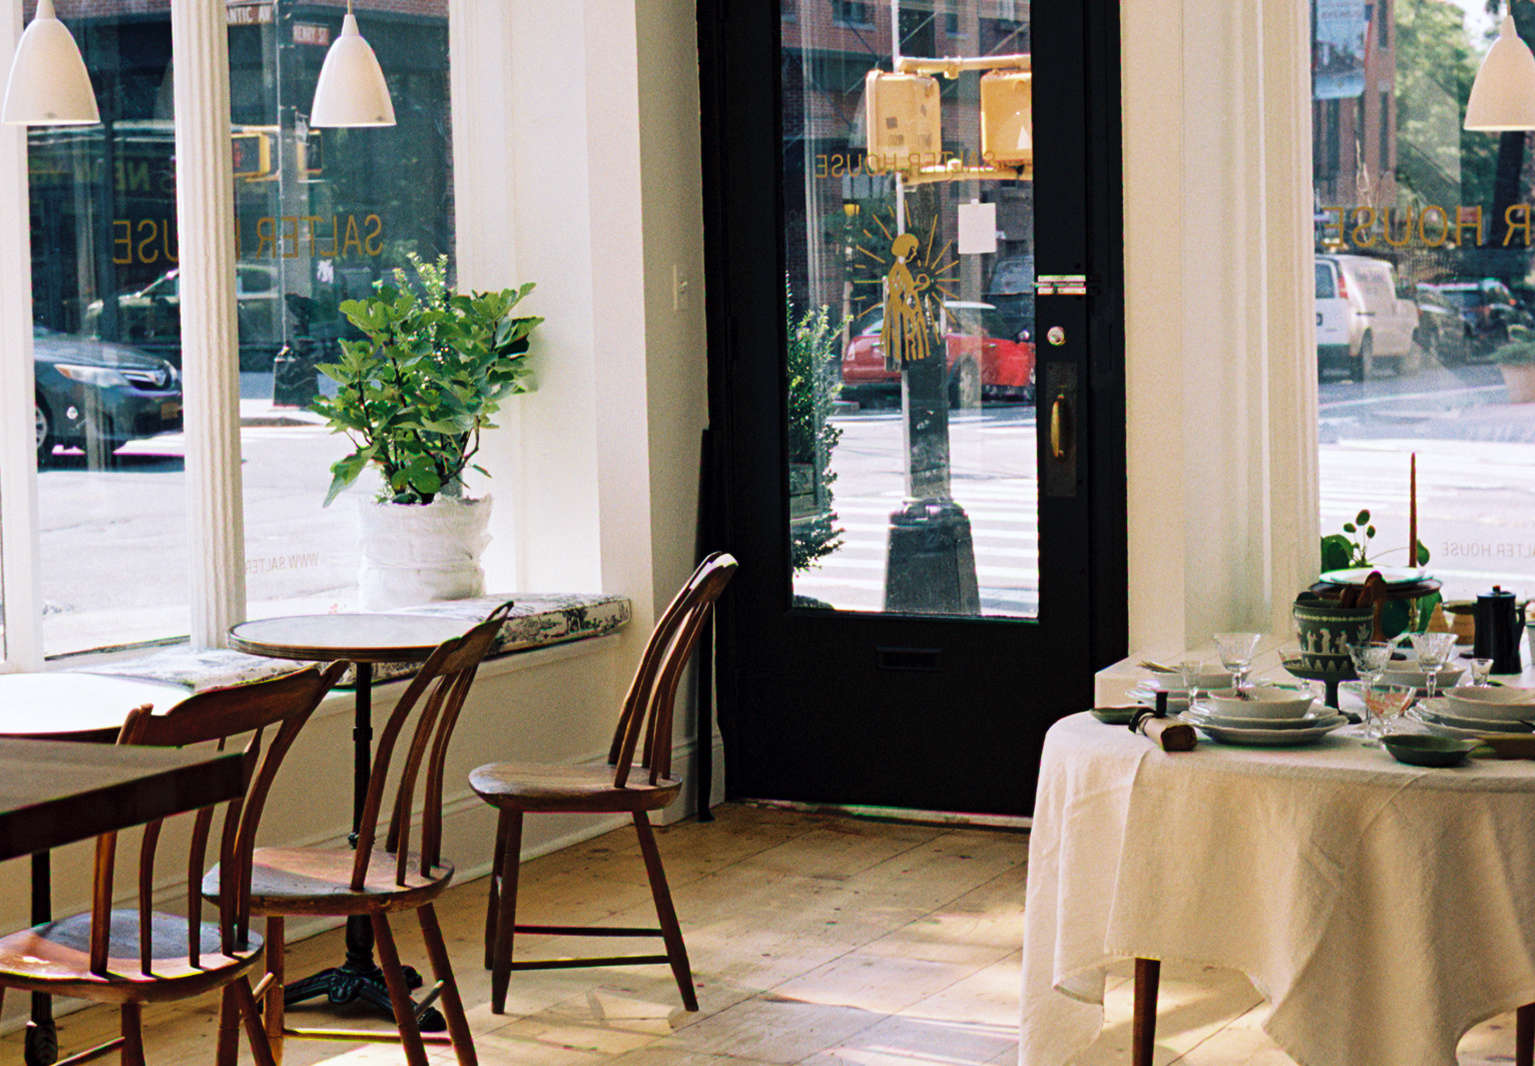 Salter House: An Artfully Old-Fashioned Shop and Tea Room in Brooklyn Heights